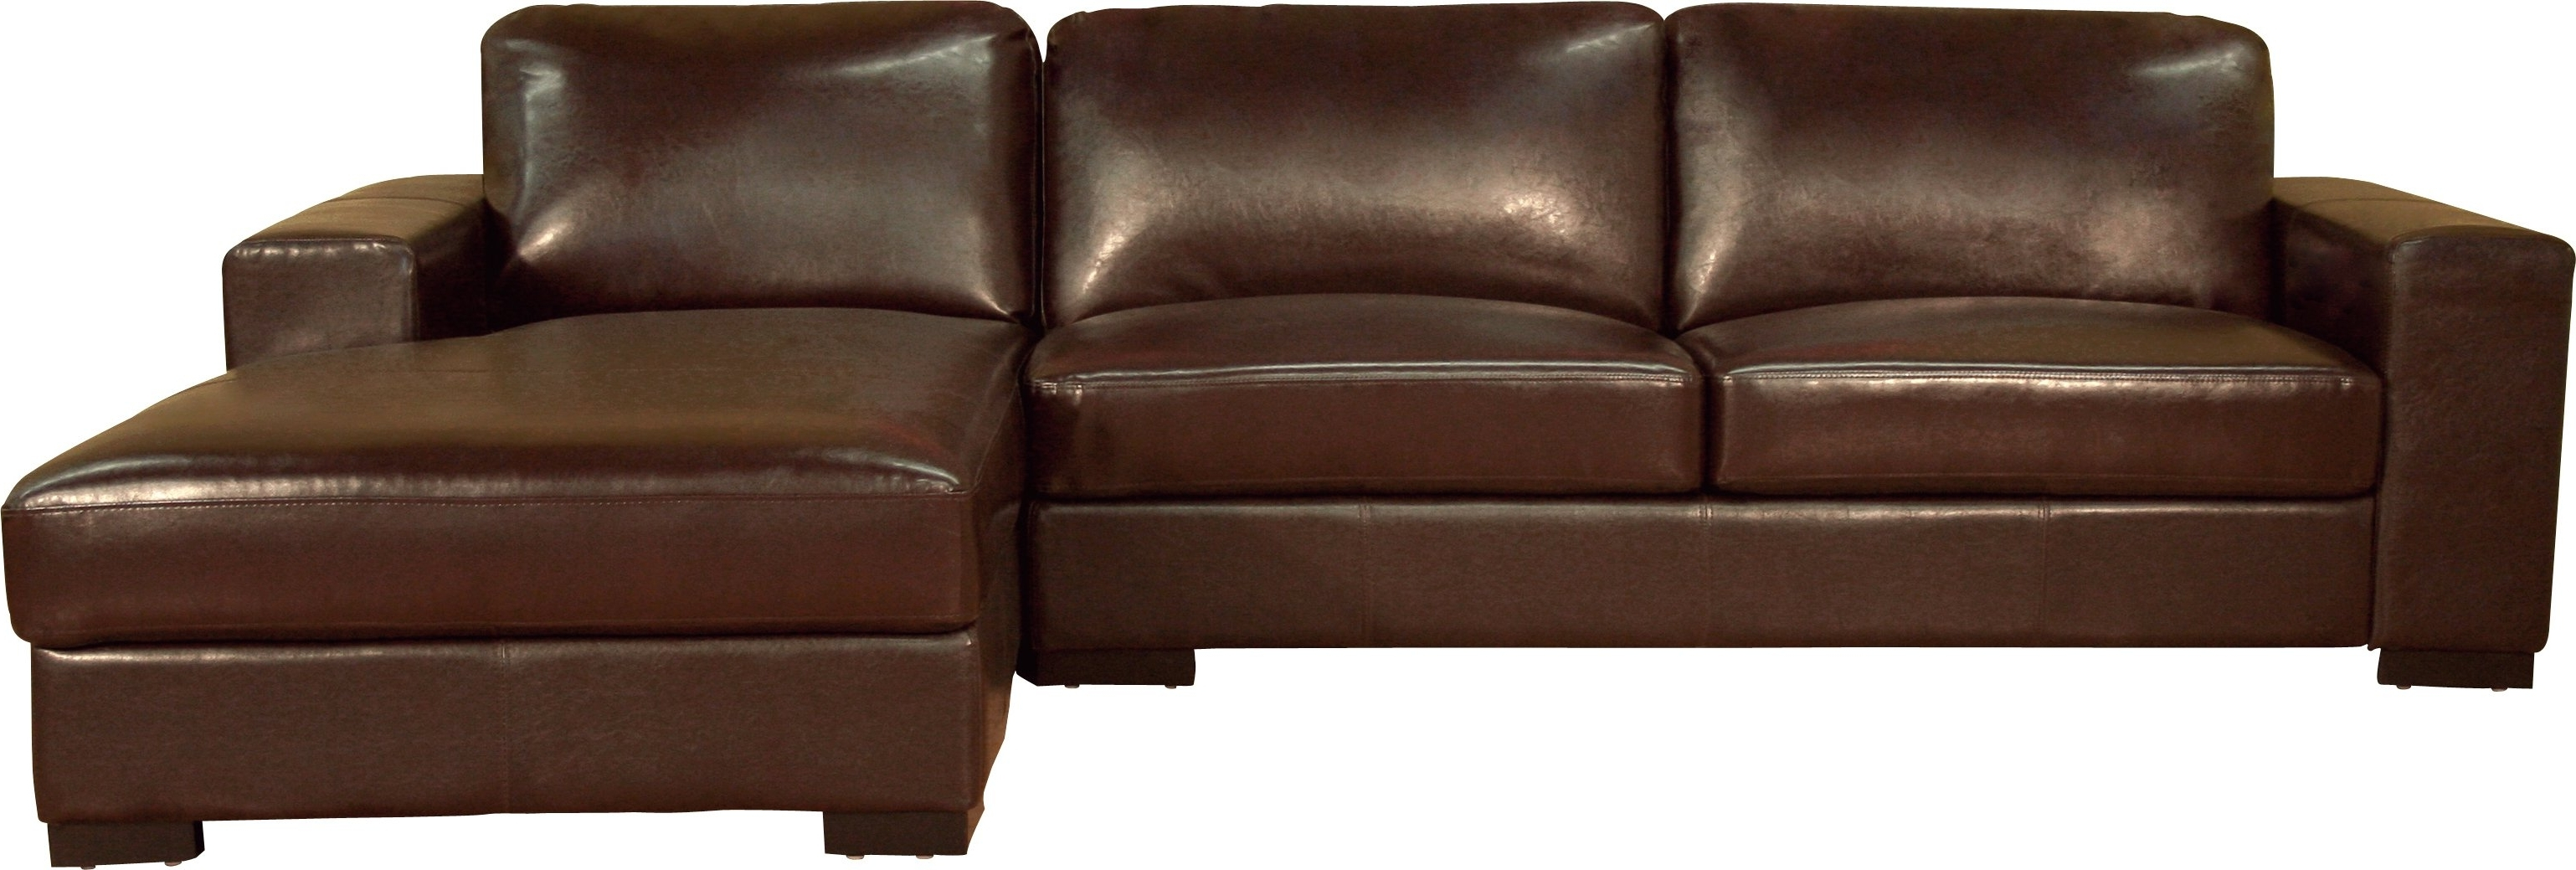 Trendy Tight Brown Leather Sectional Chaise Couch Of Pleasurable Brown For Leather Sofas With Chaise (View 9 of 15)